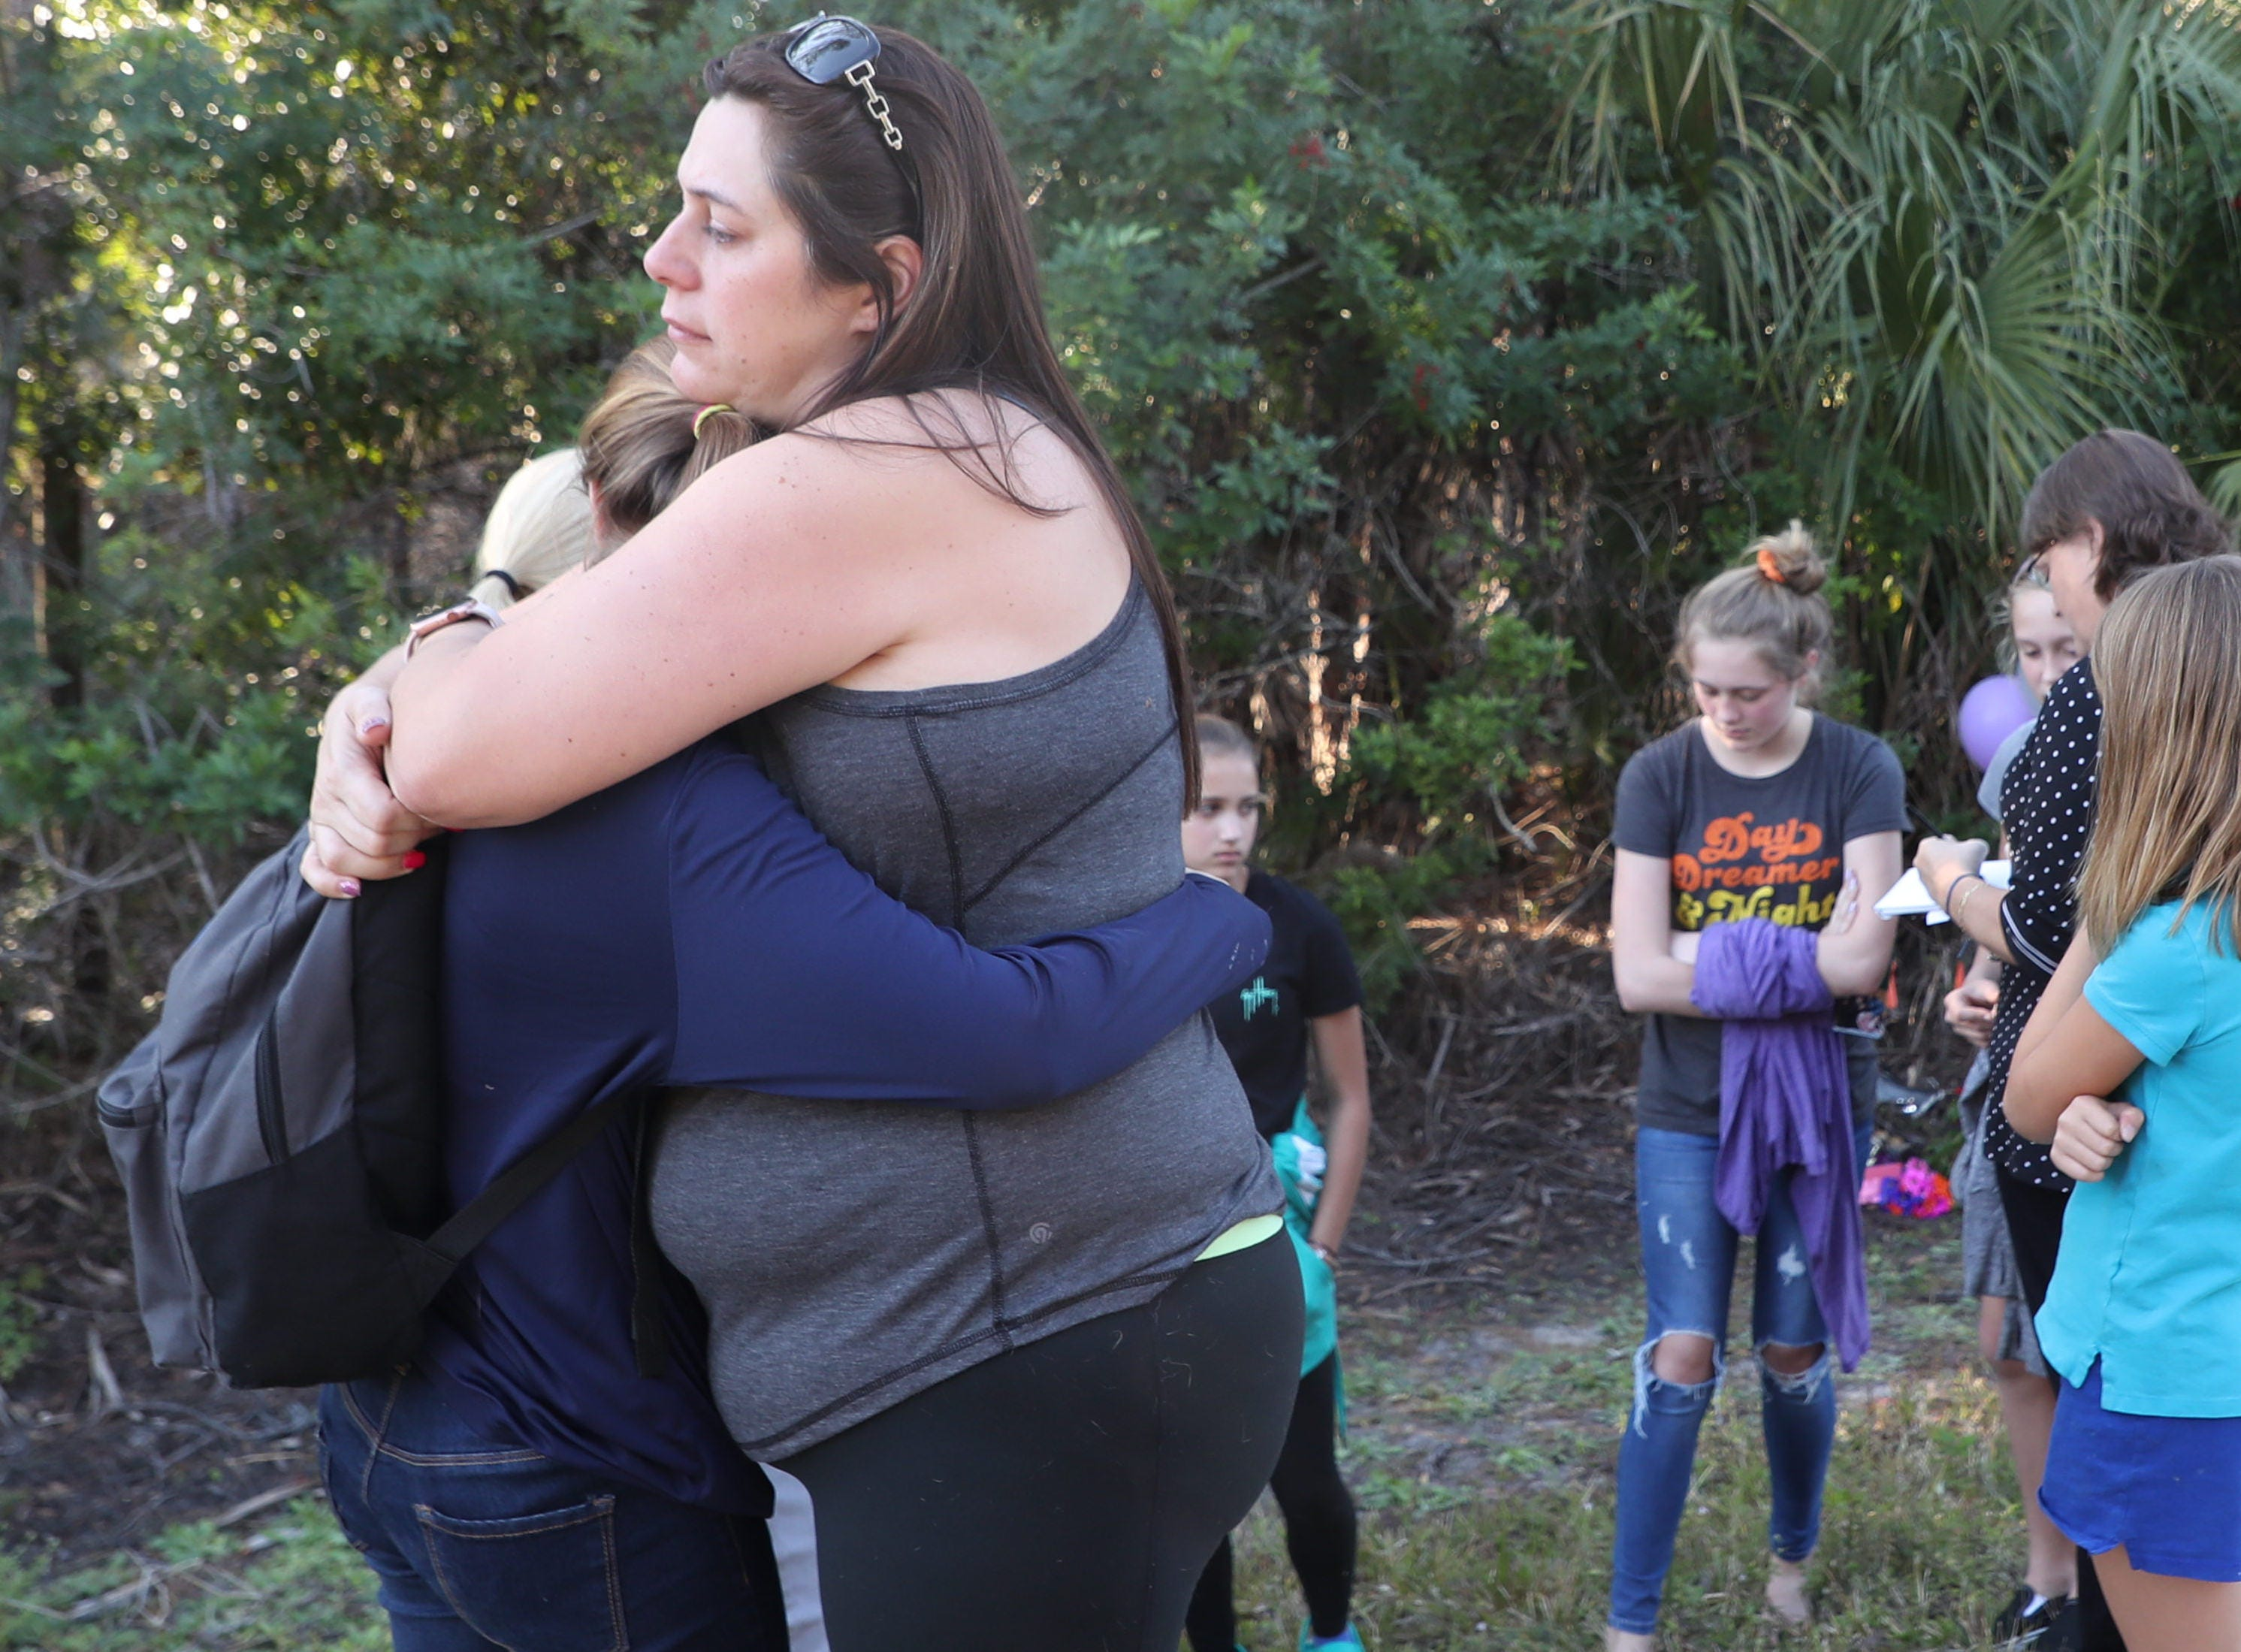 Family and friends of Alana Tamplin, 12,  gathered at a roadside memorial on Monday afternoon. Tamplin was killed by a driver while walking back home on Durrance Road after dropping her younger sister off at the bus stop on Monday morning.